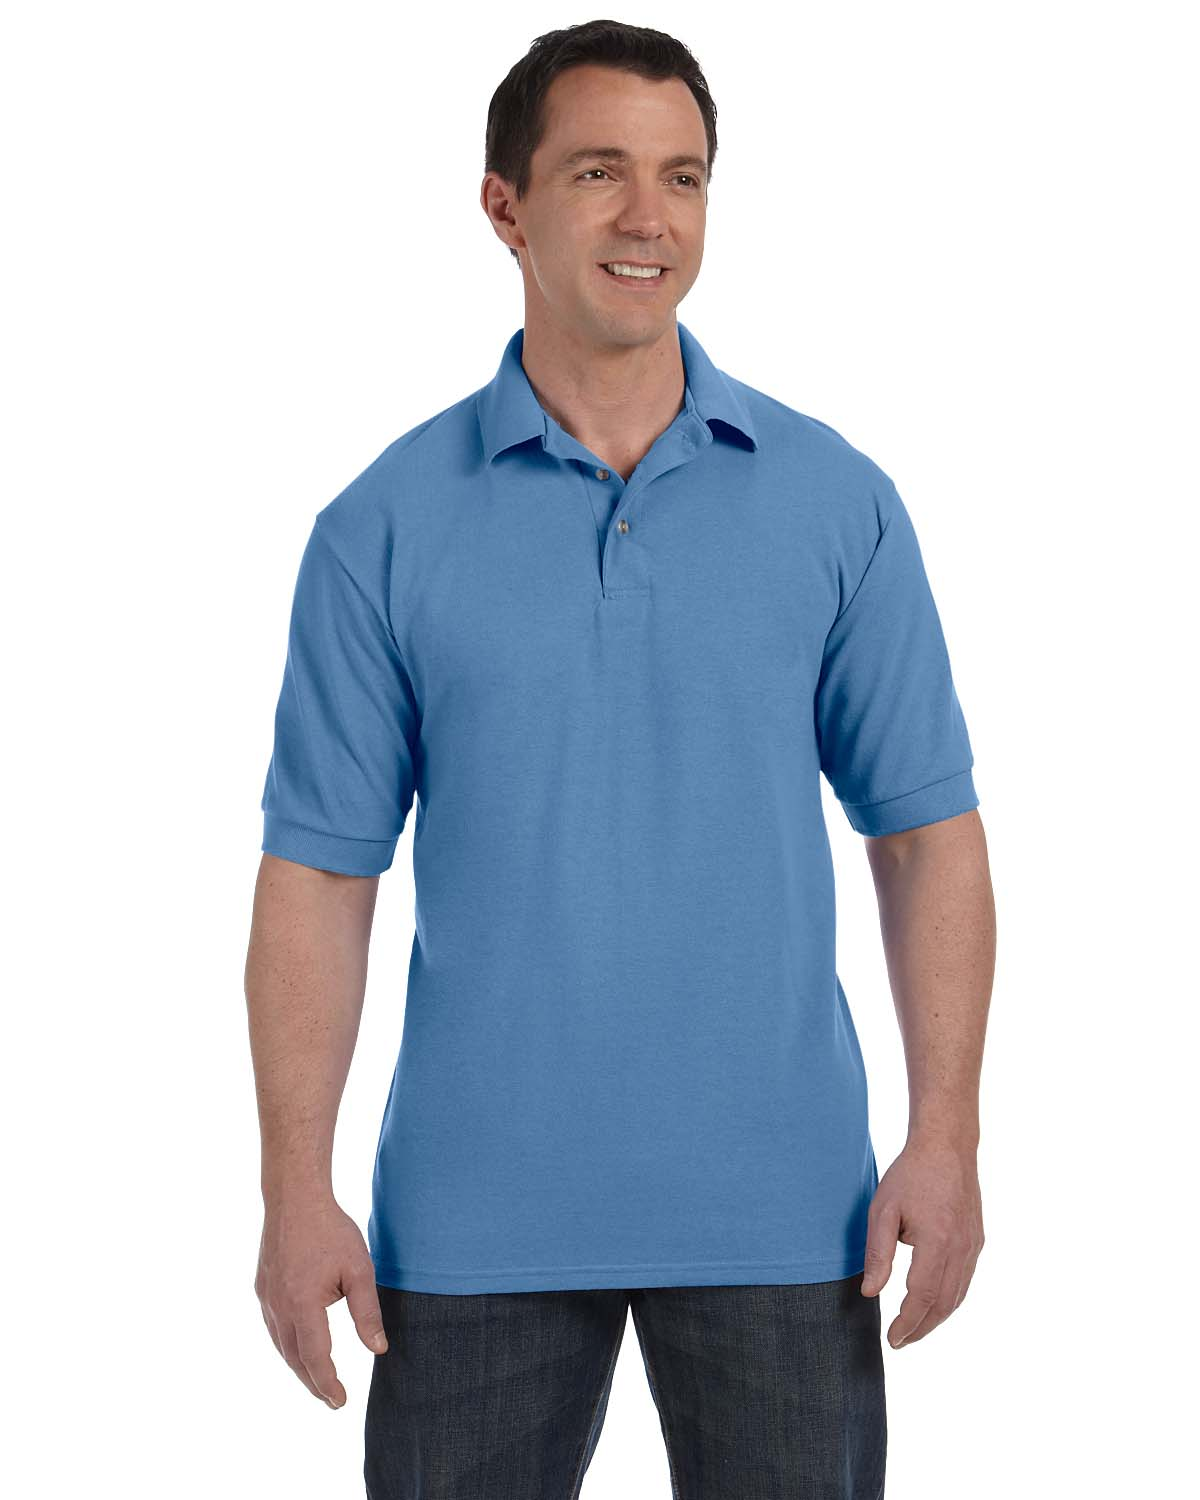 Hanes 055 Men 7 oz. ComfortSoft Cotton Pique Polo at GotApparel